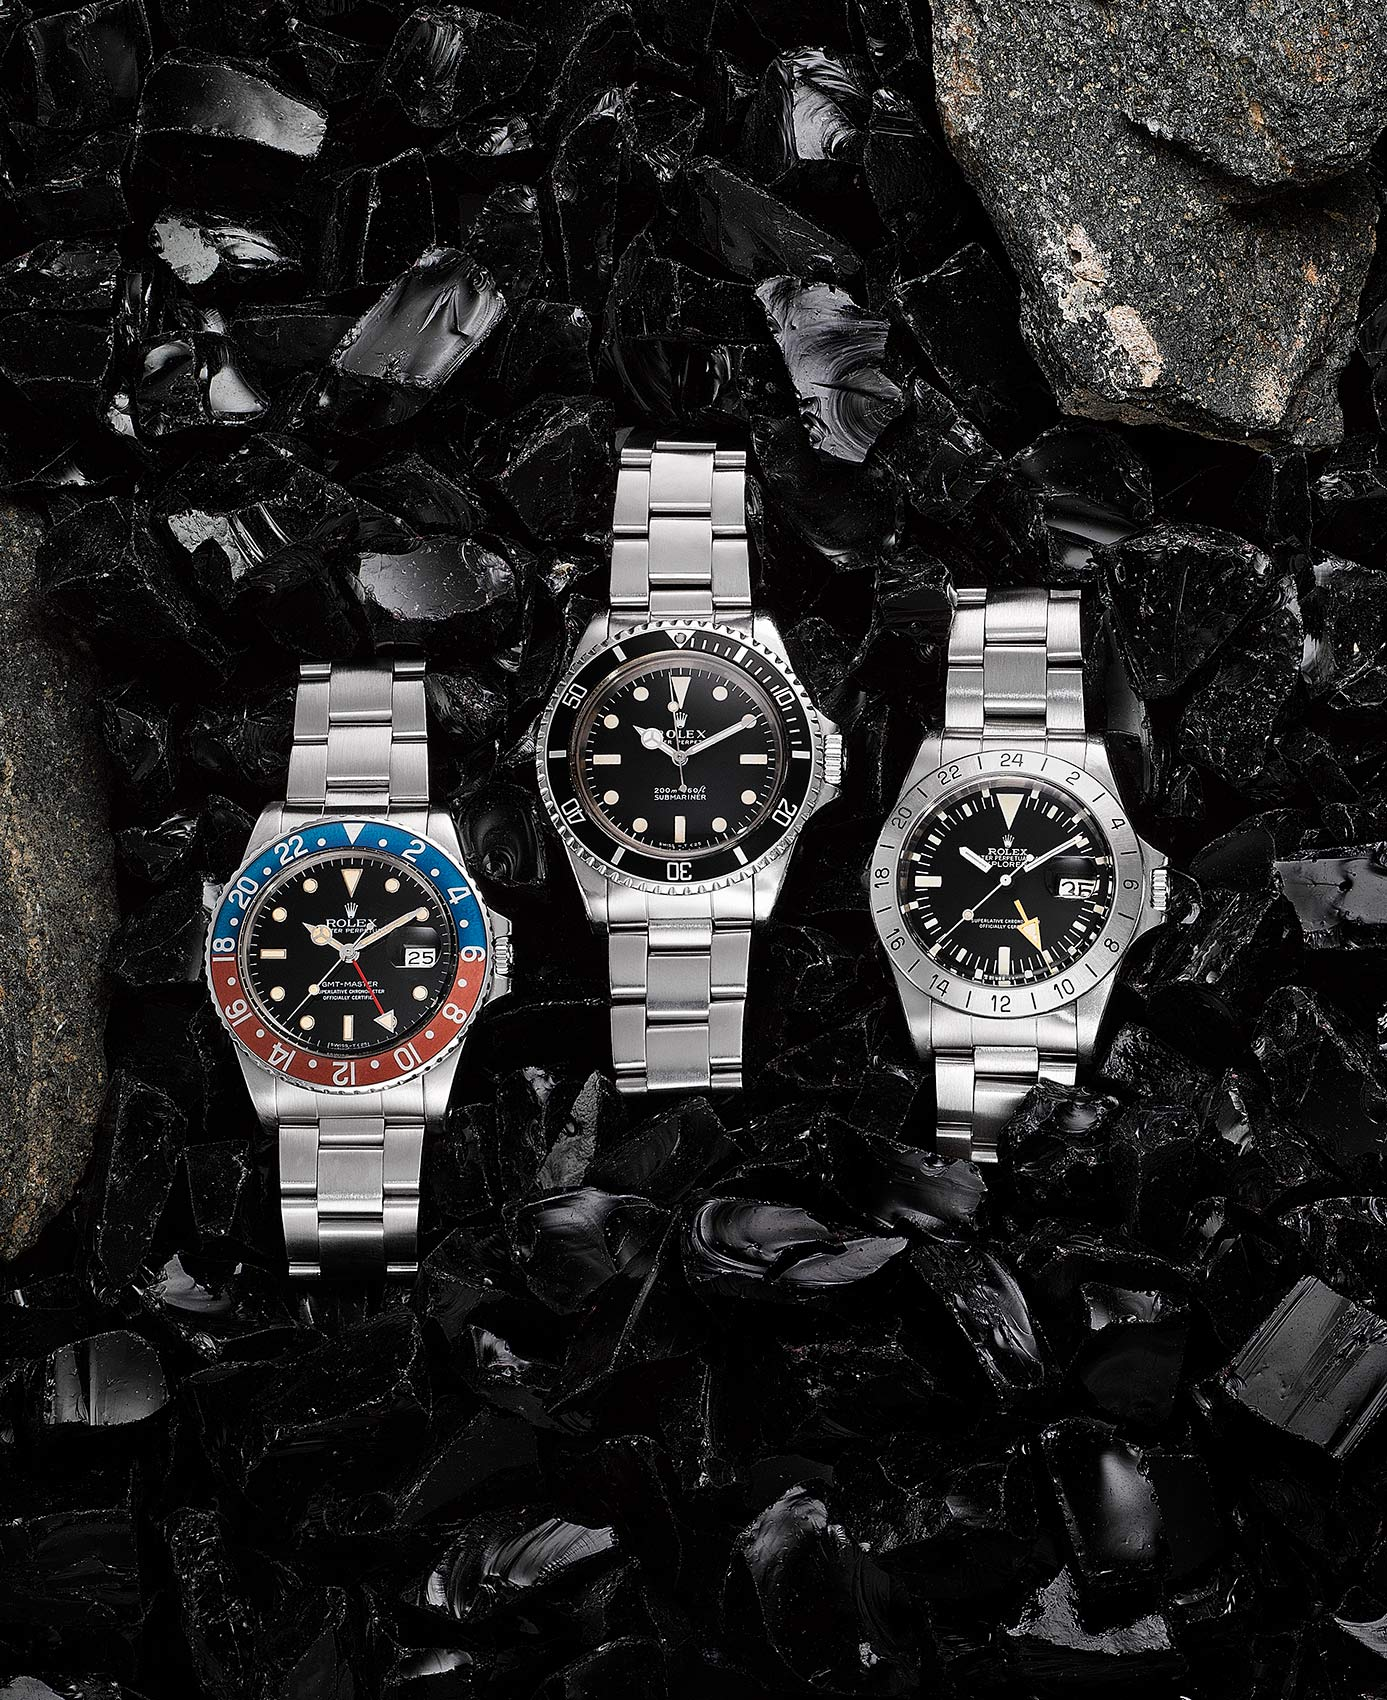 Rolex Watches on Black Carbon